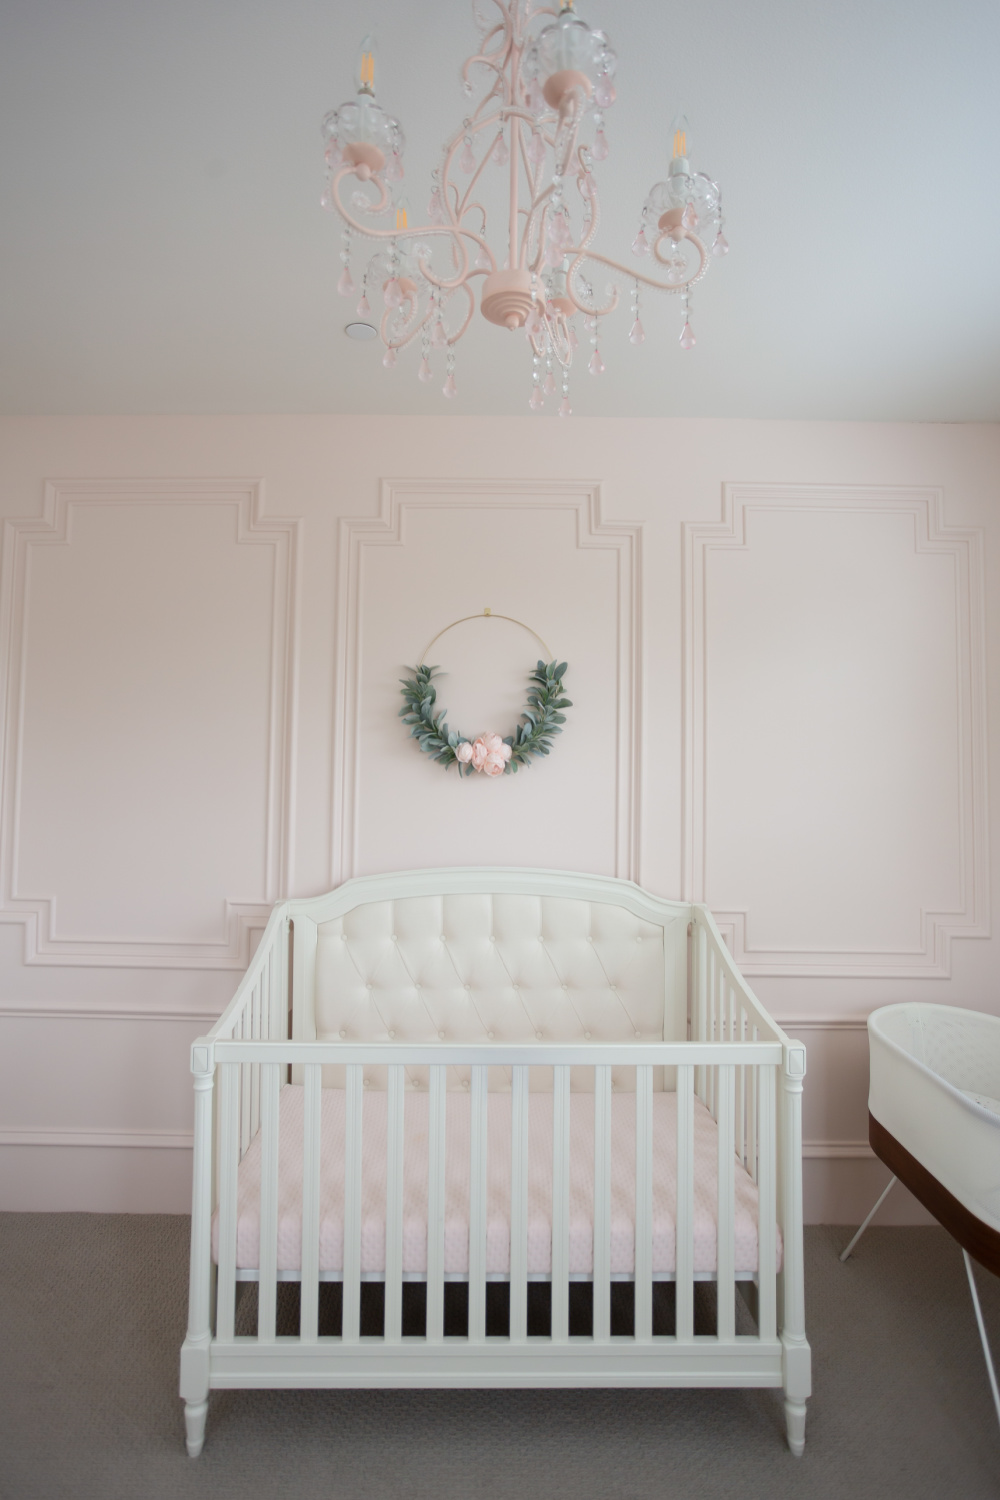 Intimate White (BM) pale blush pink painted accent wall with millwork in a beautiful nursery - StylishPetite. #intimatewhite #blushpink